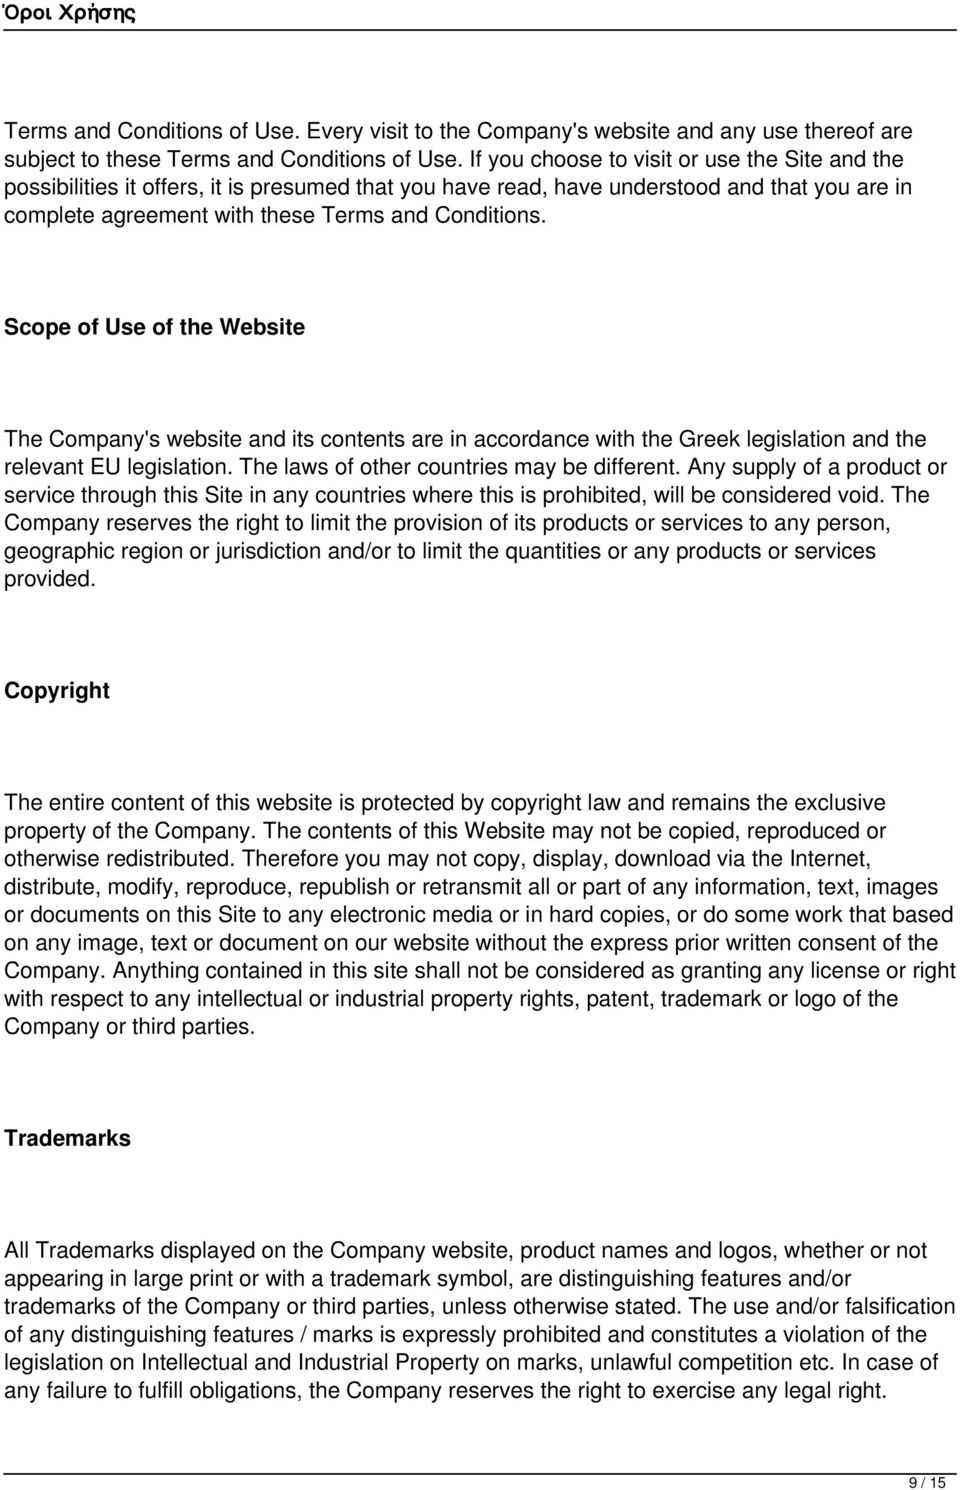 Scope of Use of the Website The Company's website and its contents are in accordance with the Greek legislation and the relevant EU legislation. The laws of other countries may be different.